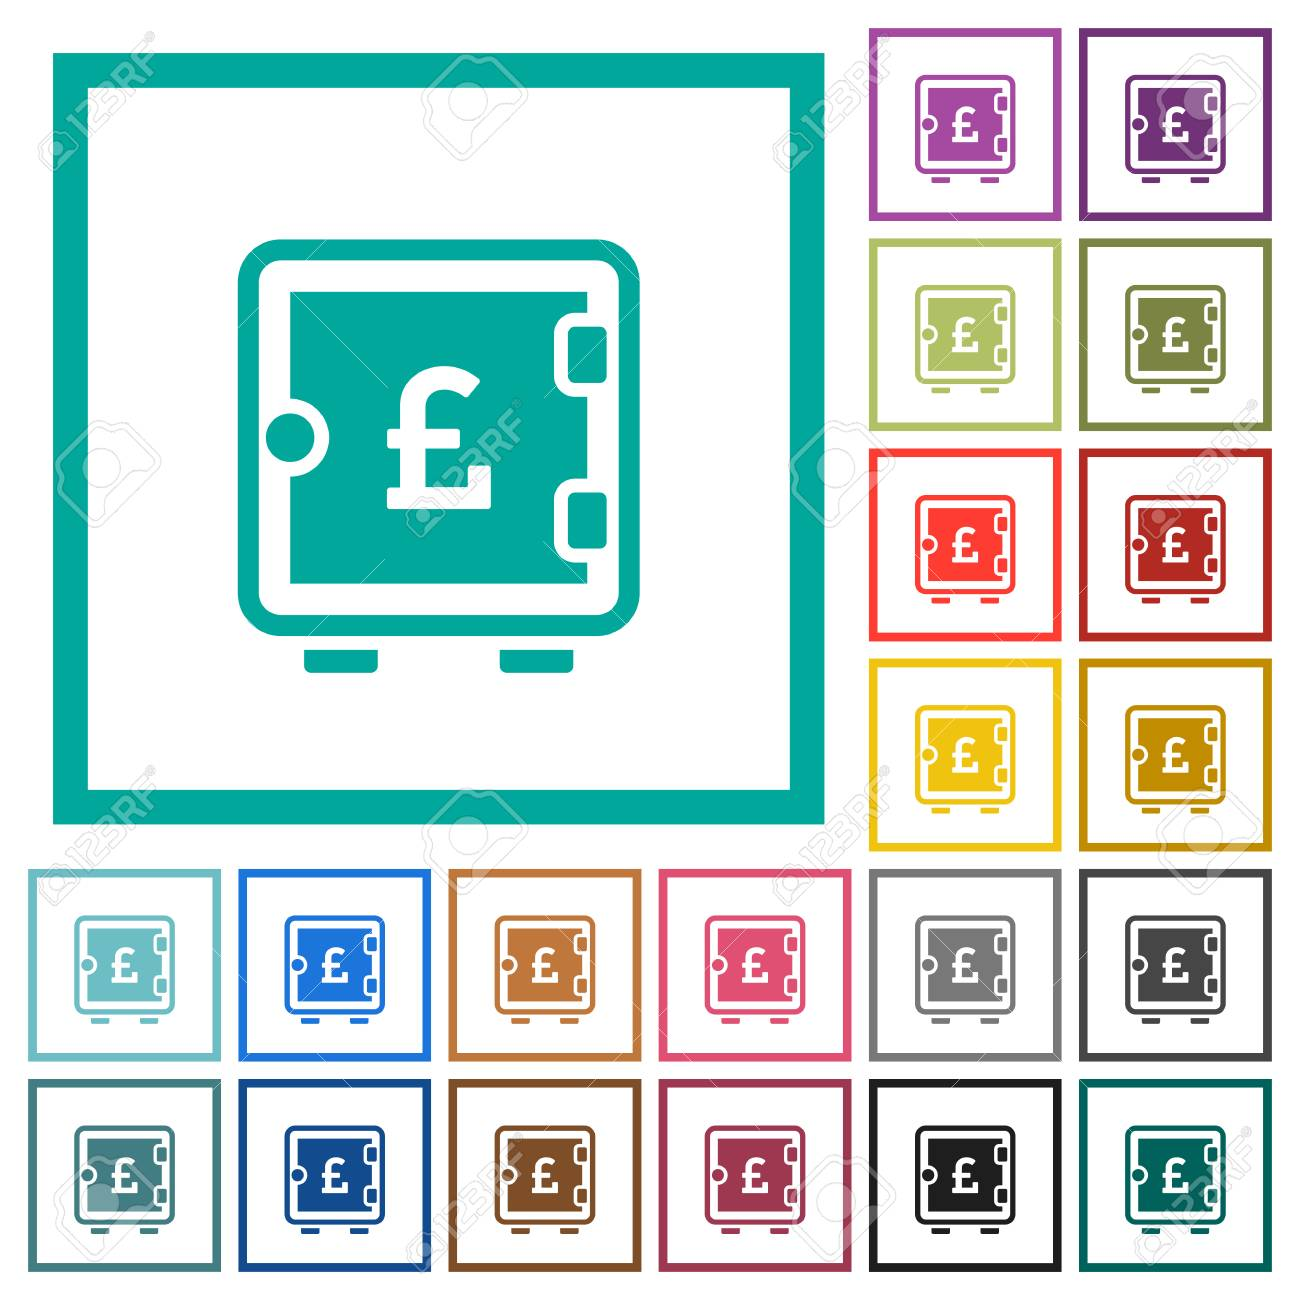 Pound Strong Box Flat Color Icons With Quadrant Frames On White ...